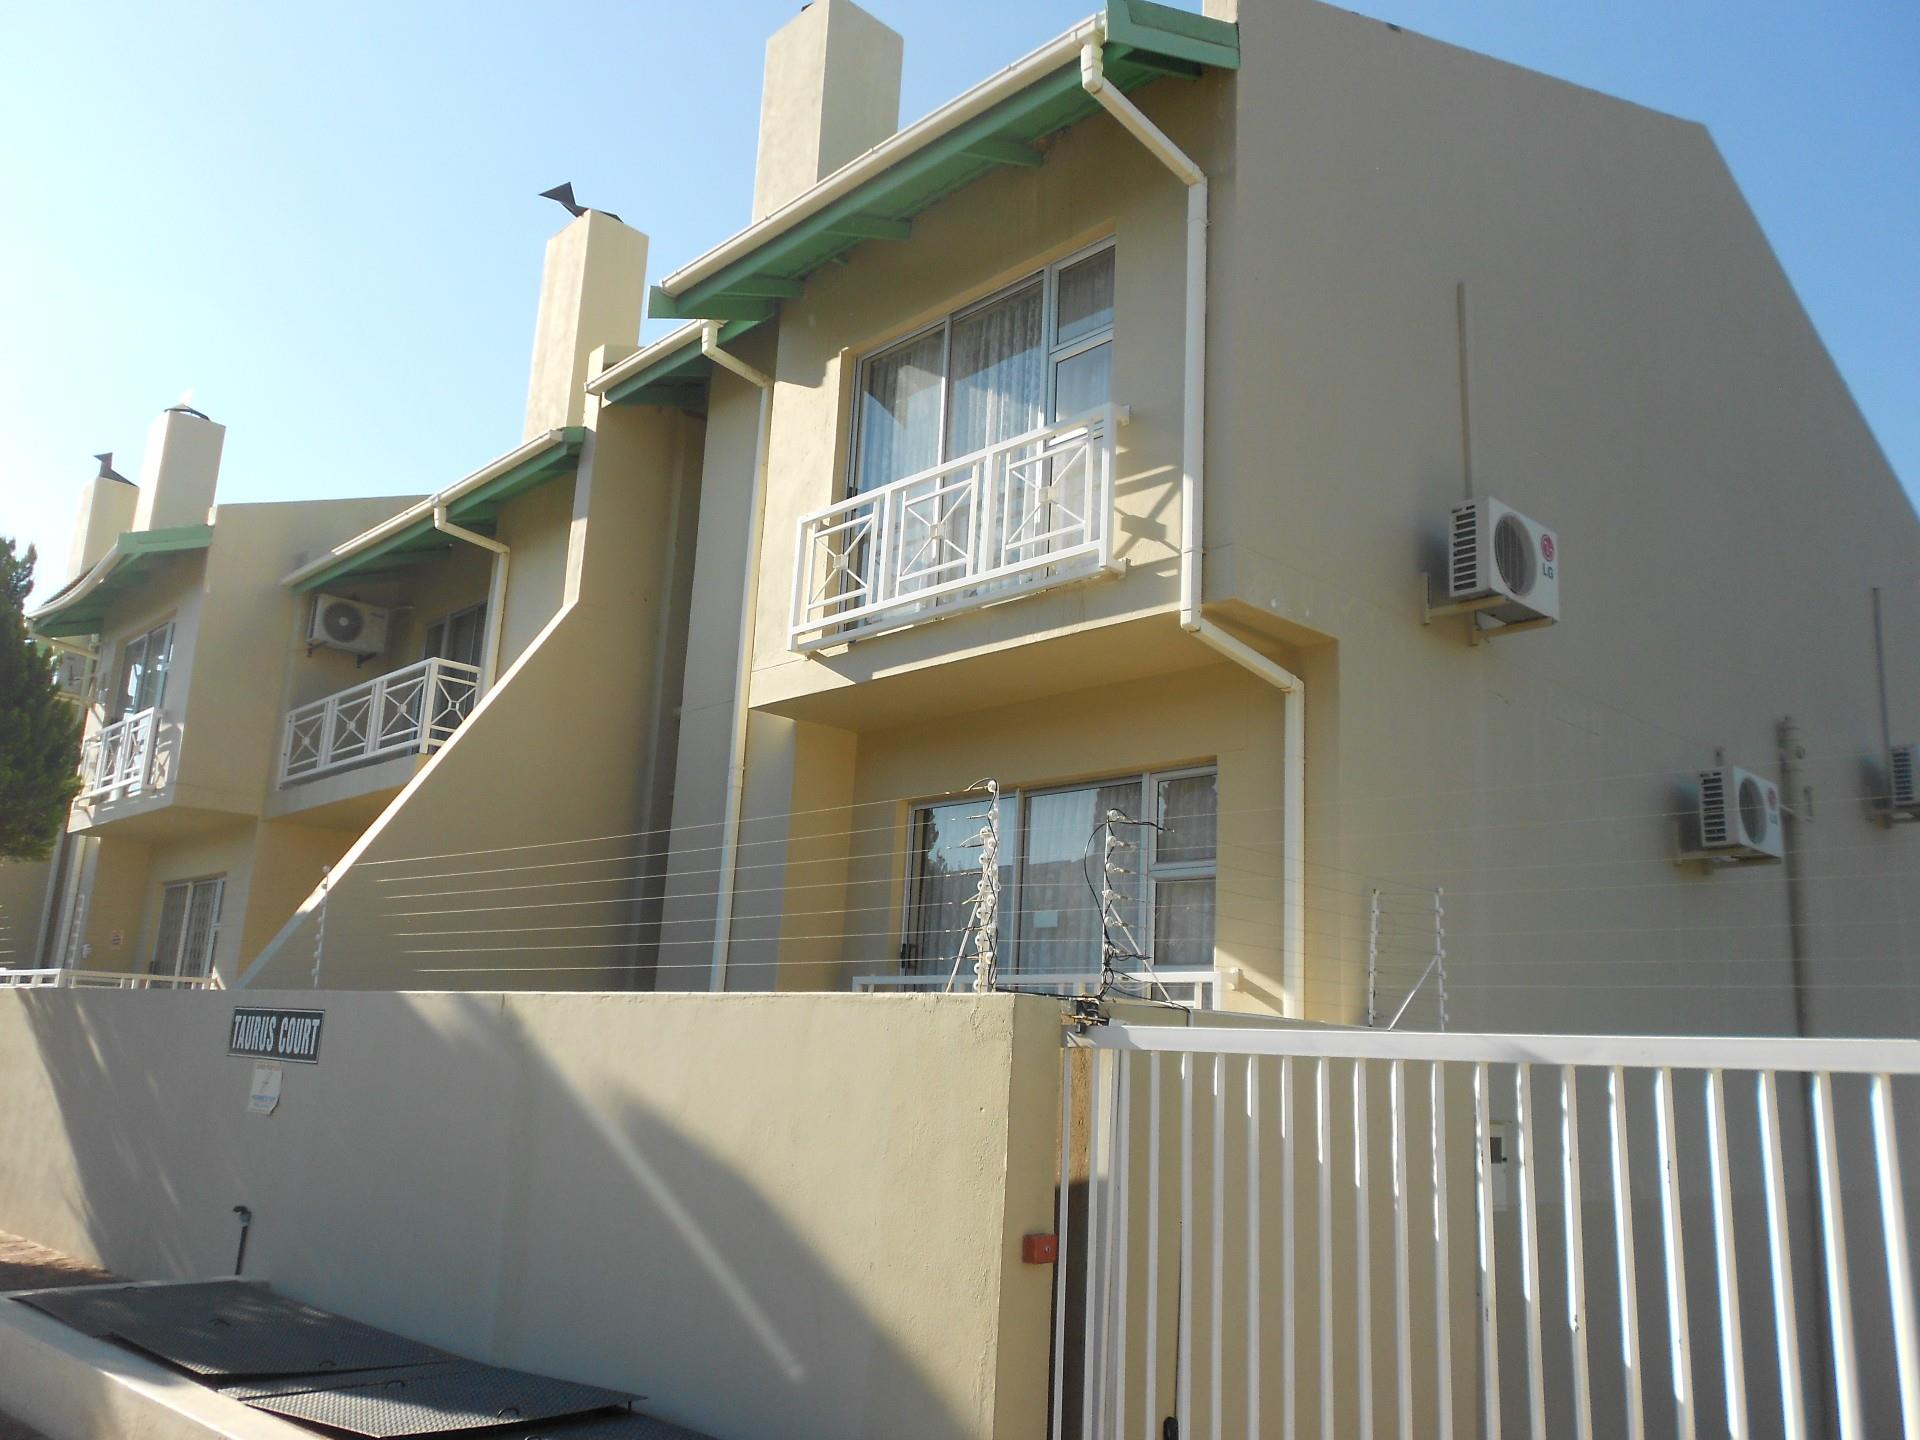 4 Bedroom Duplex For Sale in Klein Windhoek